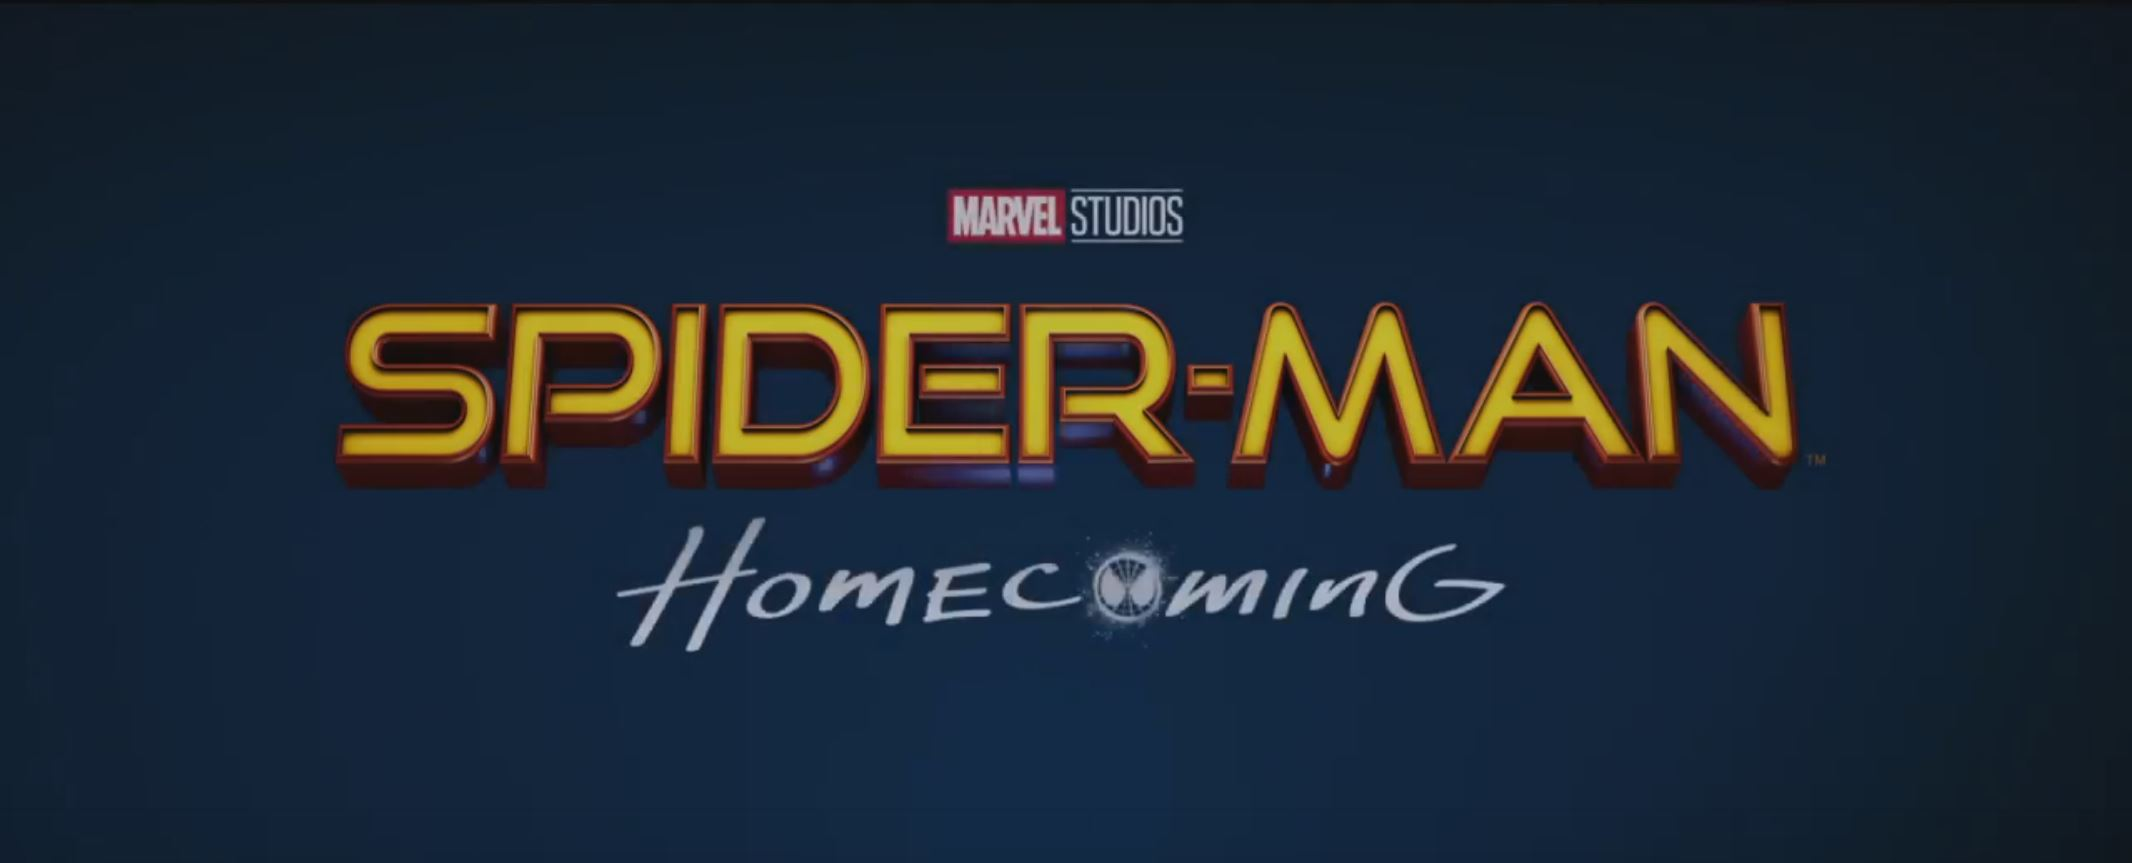 The First Spider-Man: Homecoming - Trailer Is Everything We Want And More!